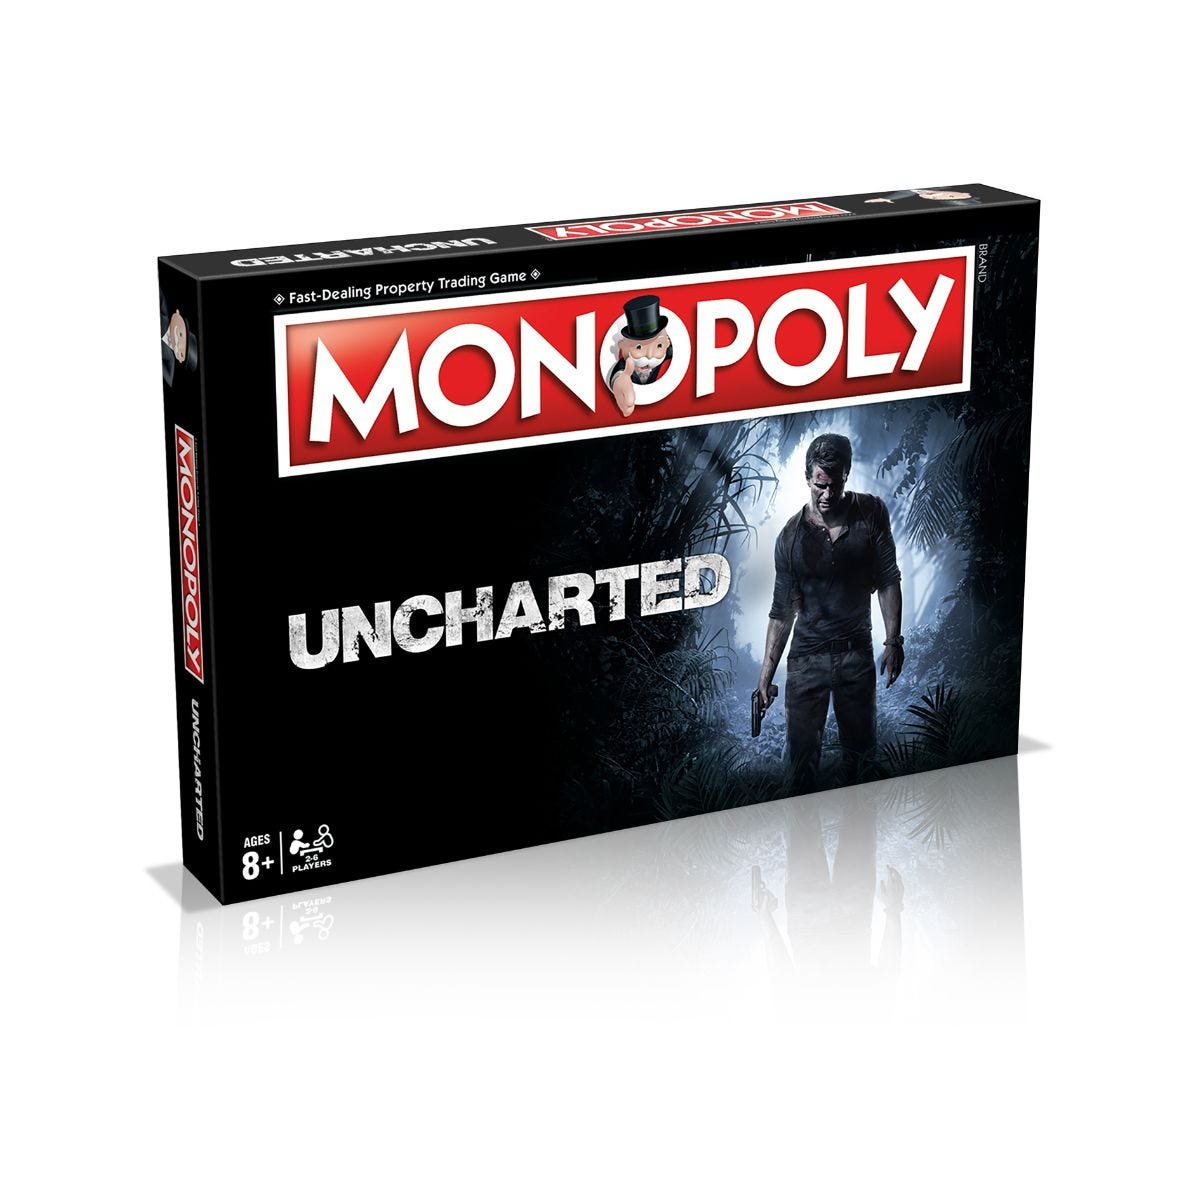 Image of Uncharted Monopoly Board Game